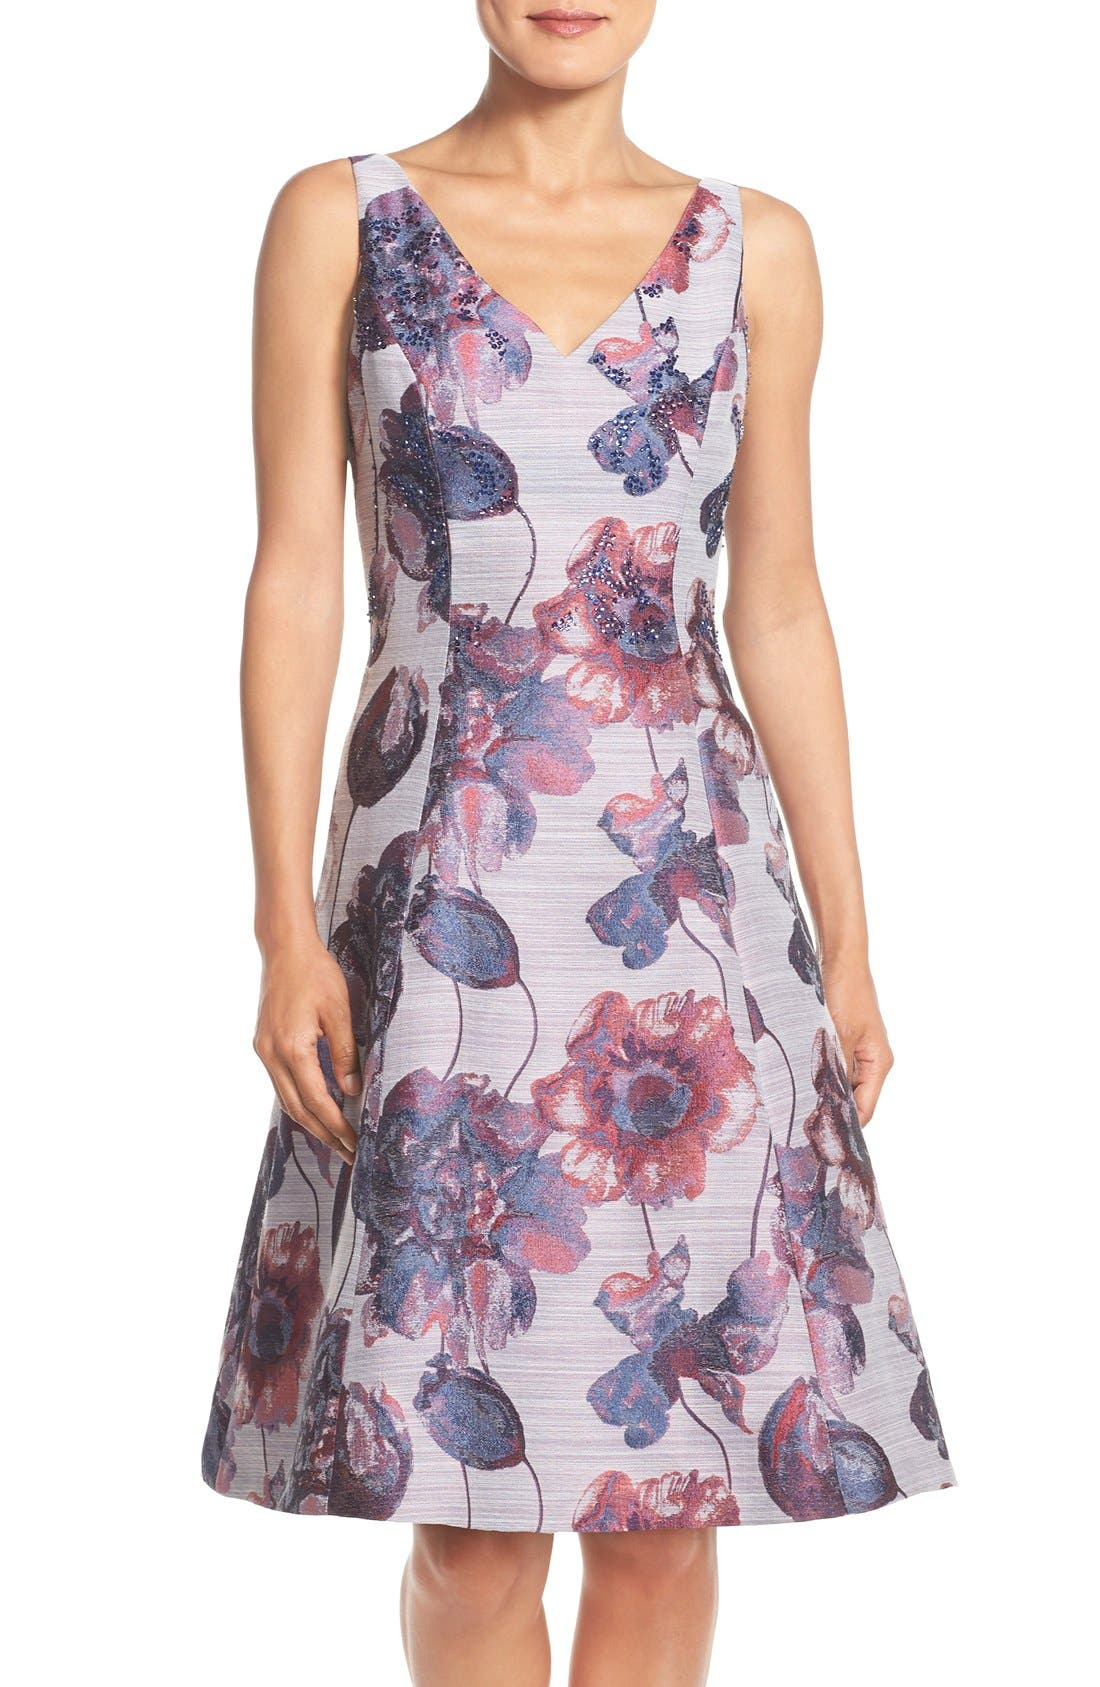 Alternate Image 1 Selected - Adrianna Papell Floral Print Fit & Flare Dress (Regular & Petite)